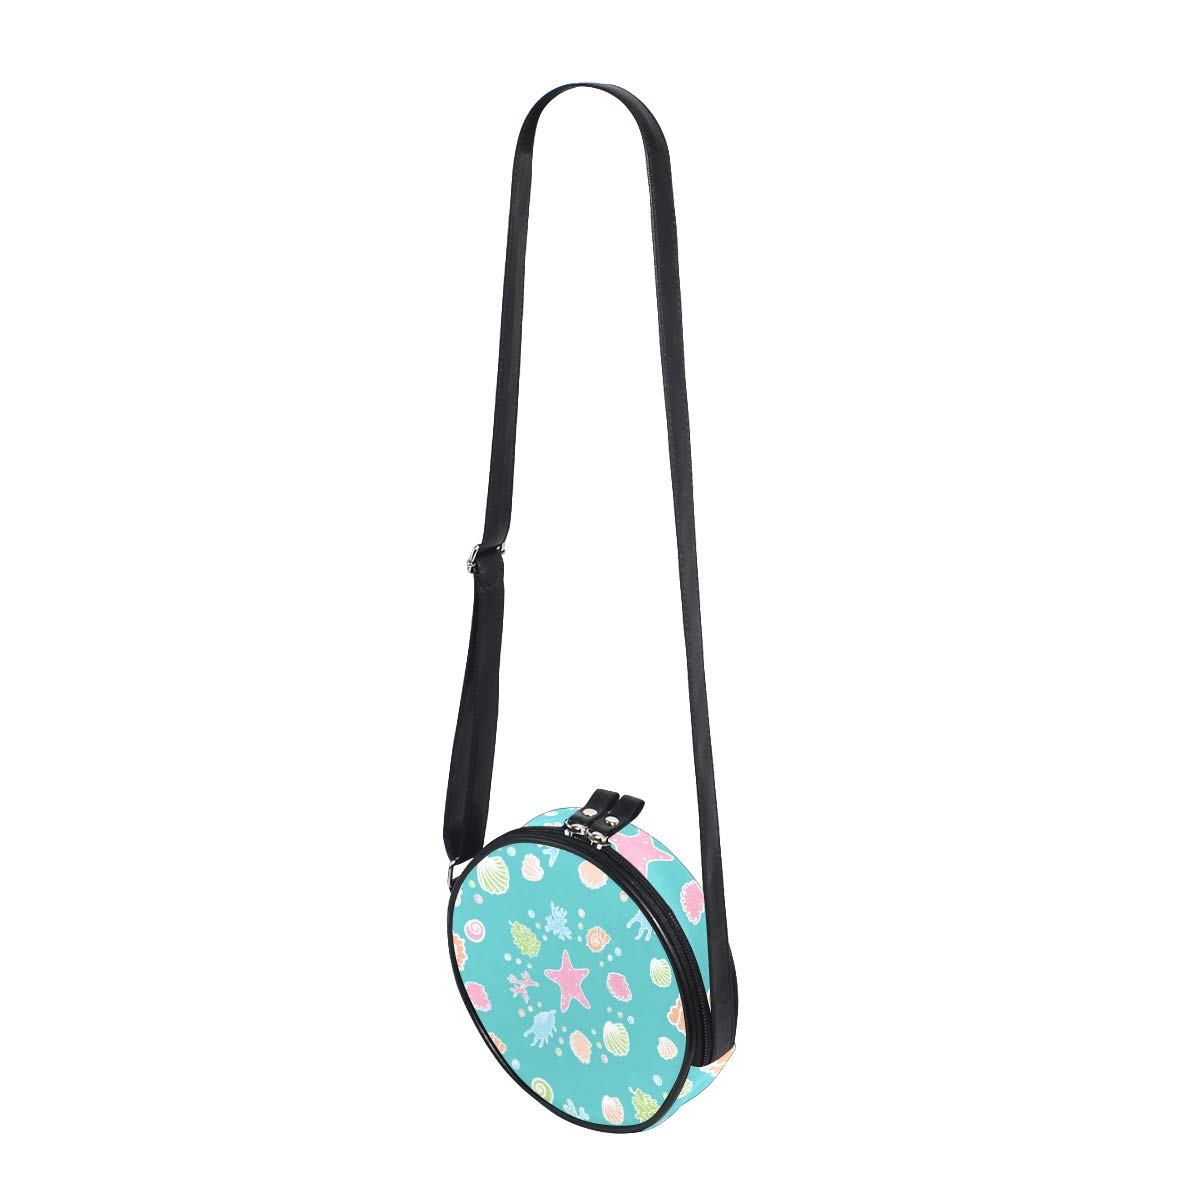 Cute Colorful Seashells And Starfish On Turquoise Super Cute Design Small Canvas Messenger Bags Shoulder Bag Round Crossbody Bags Purses for Little Girls Gifts